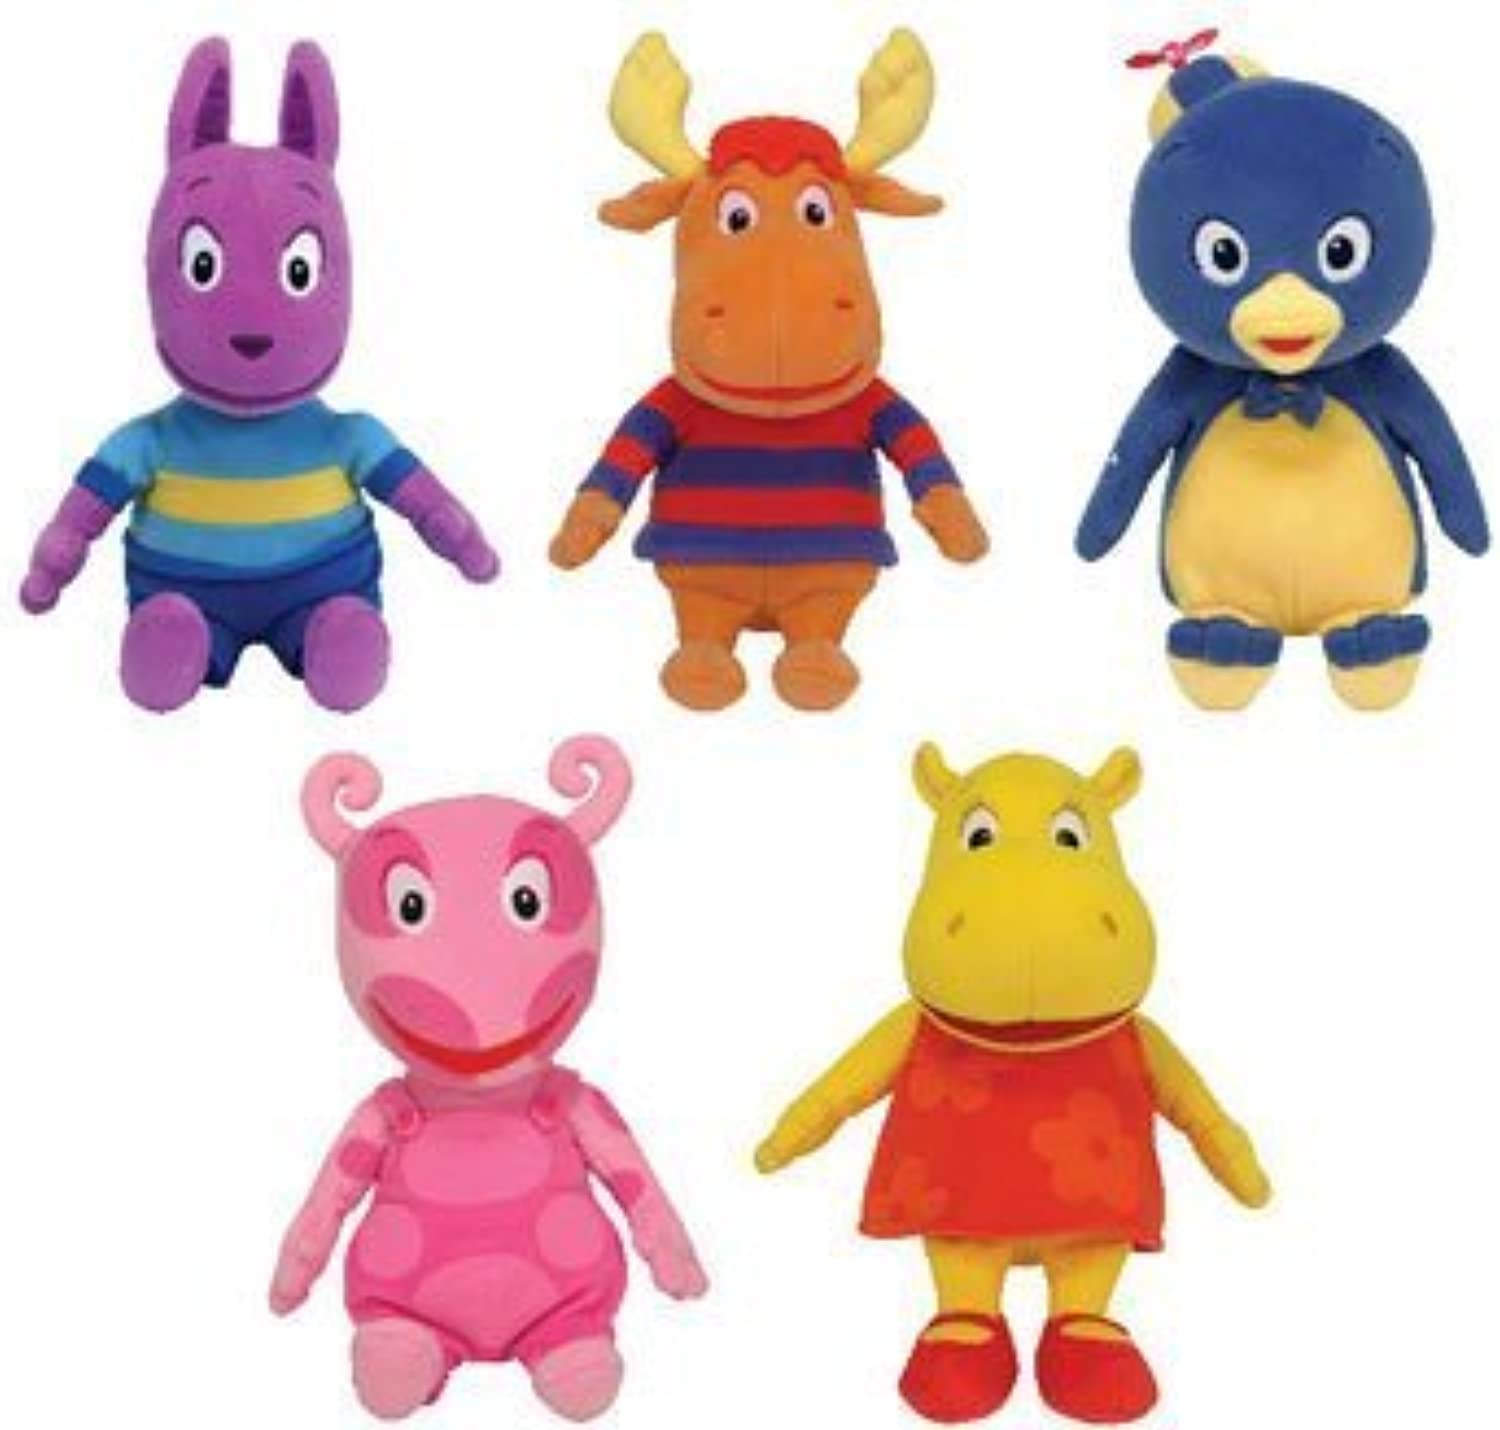 Ty Backyardigans Beanie Baby Set of 5 Beanie Babies by TY